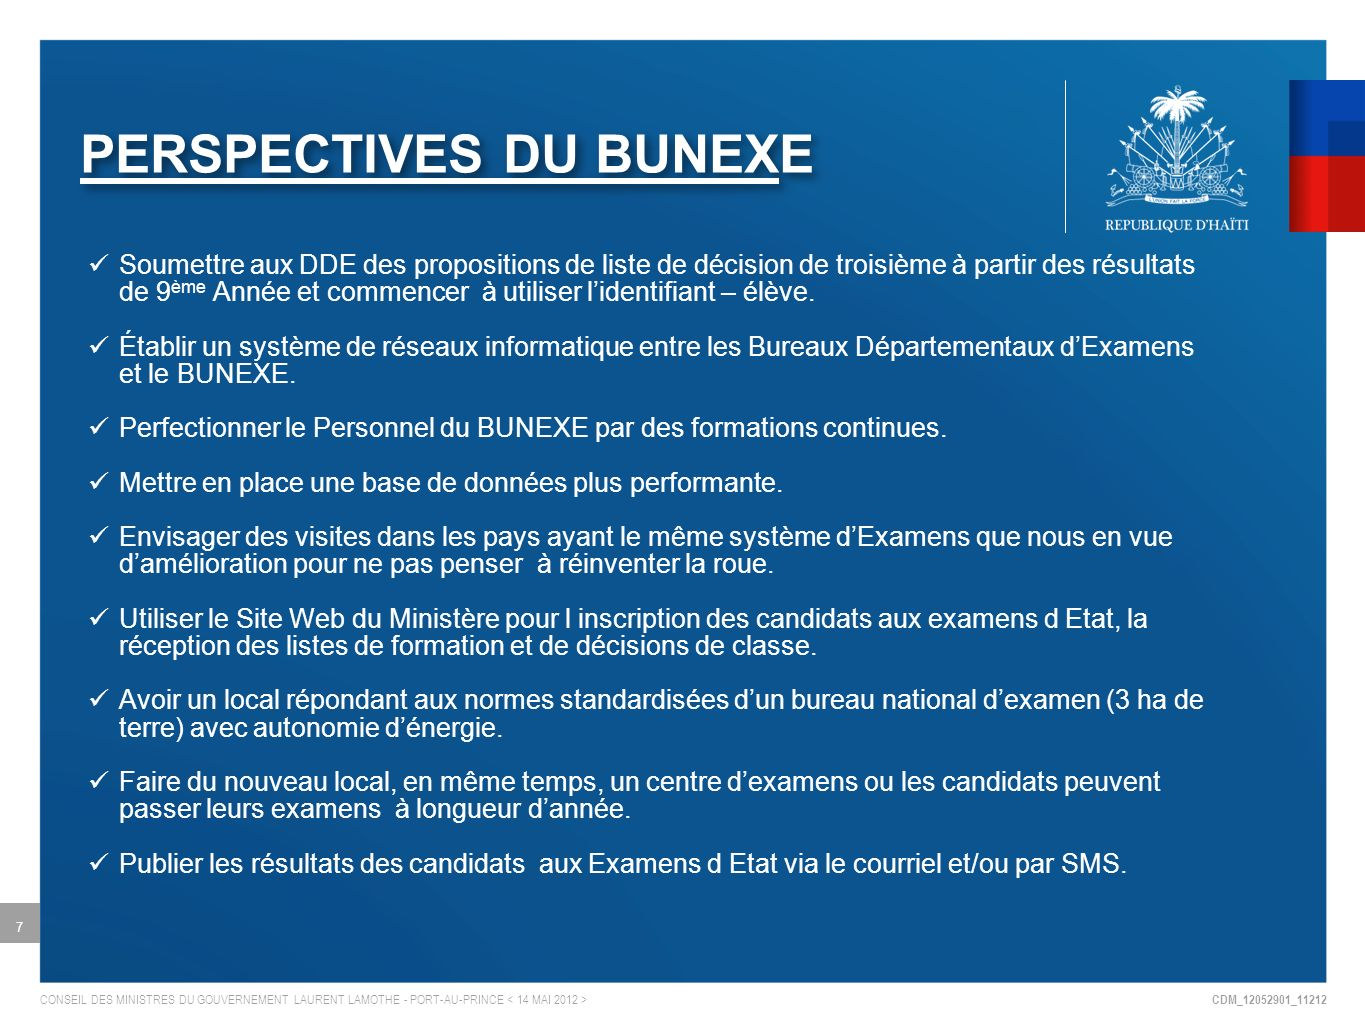 PERSPECTIVES DU BUNEXE